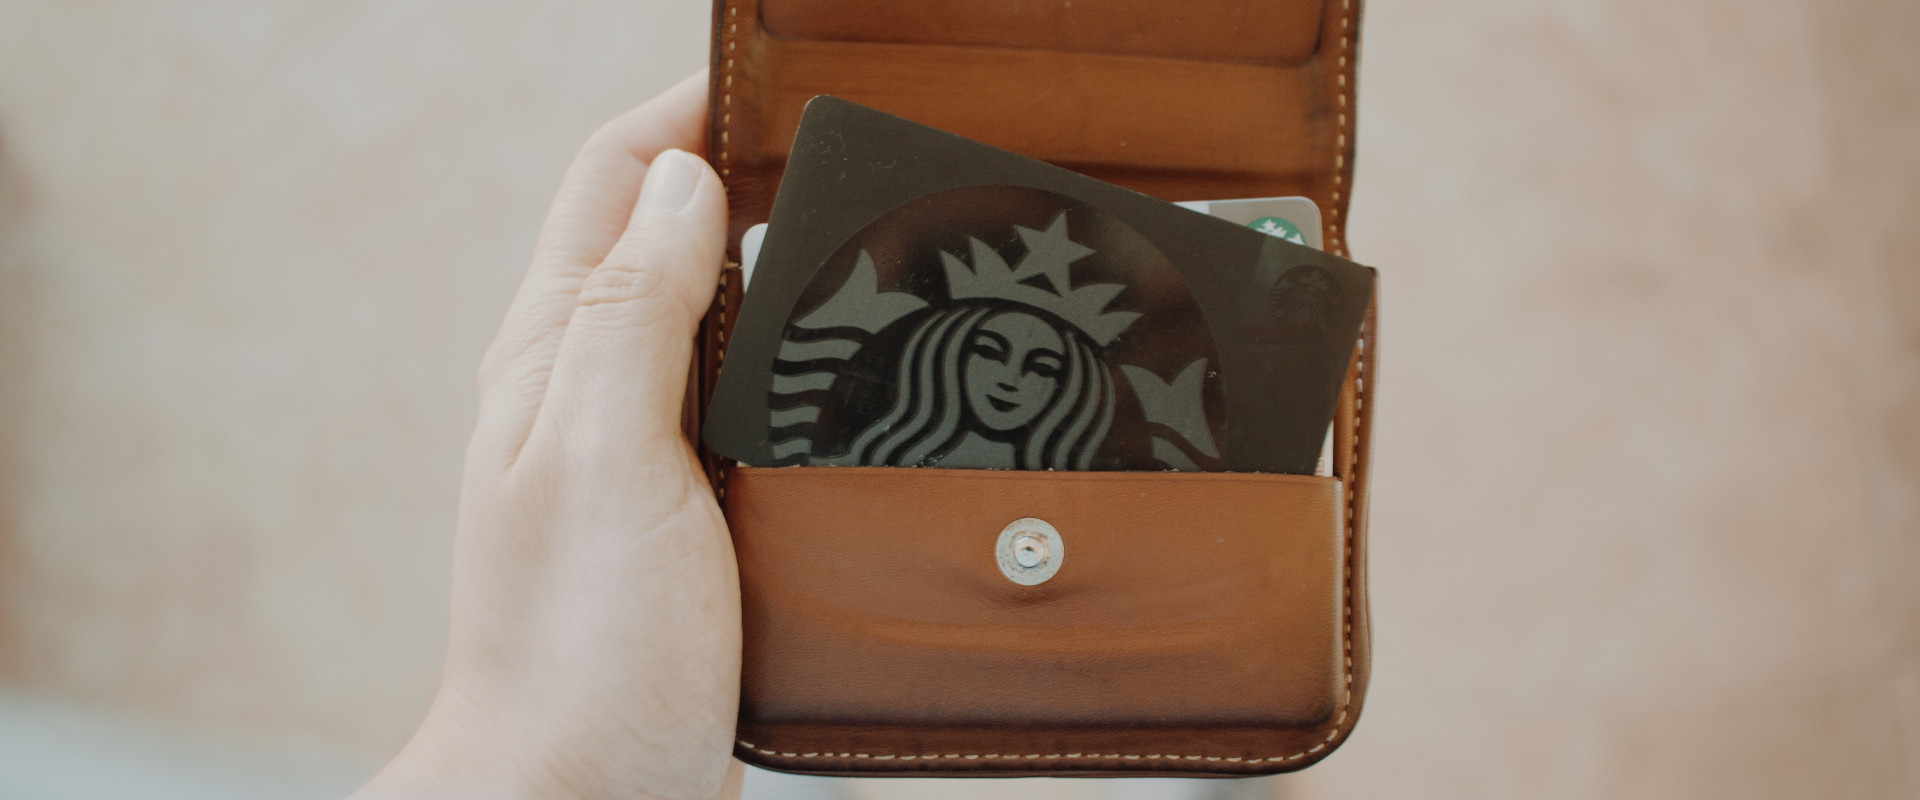 Hand holding pure with Starbucks card